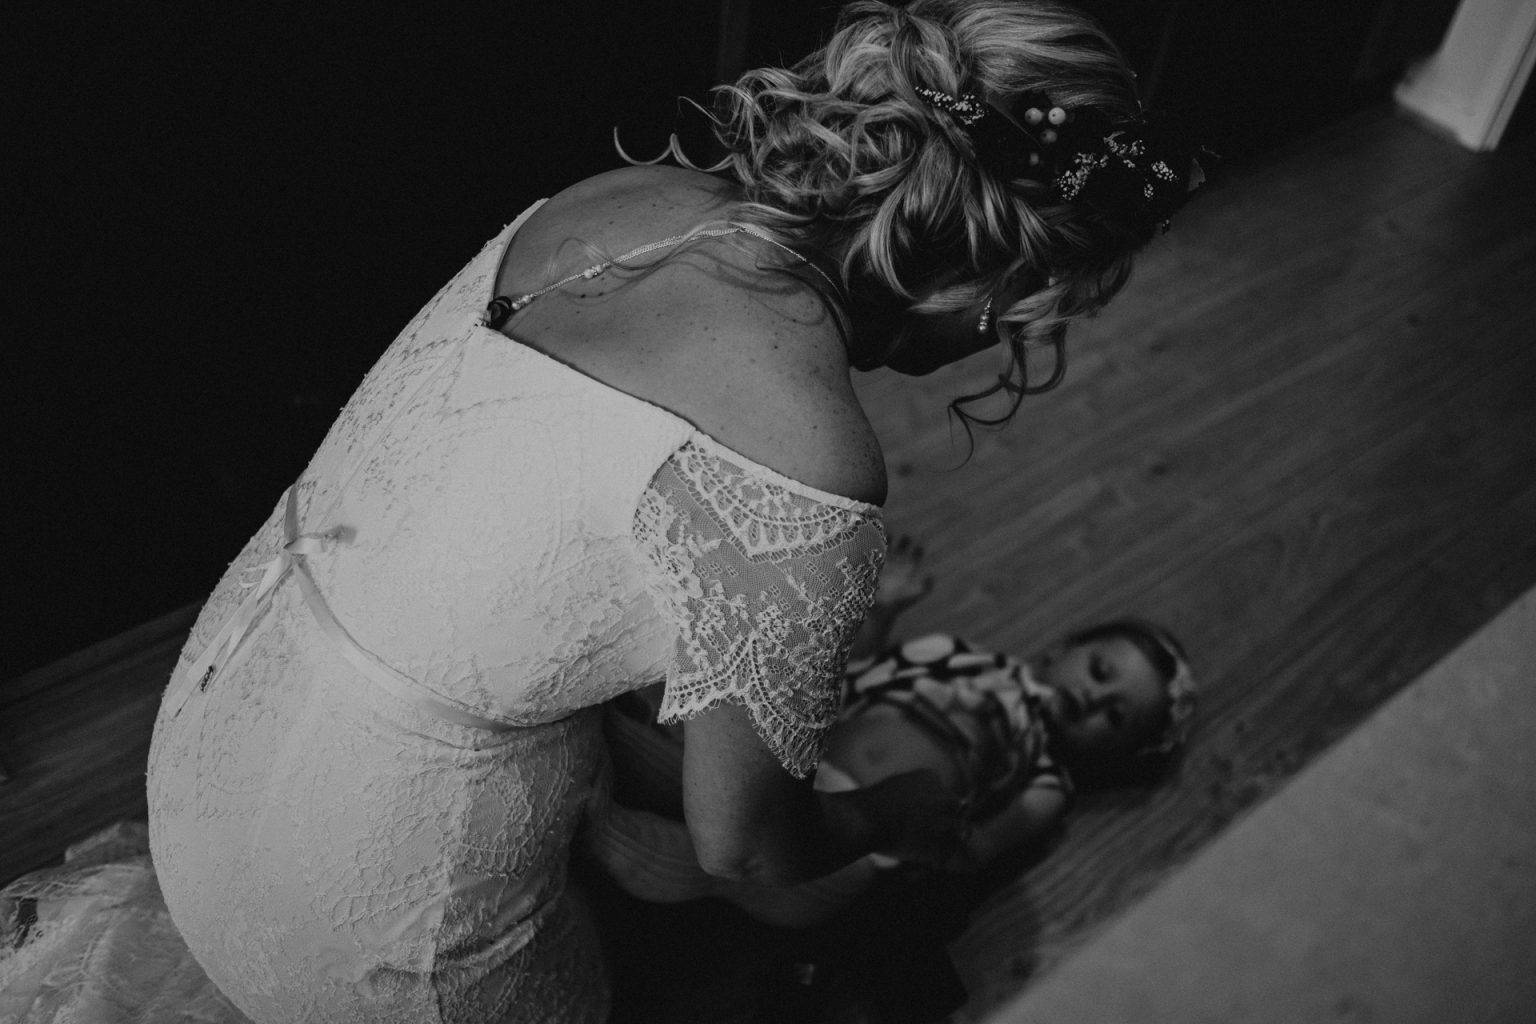 bride in dress changing nappy on floor